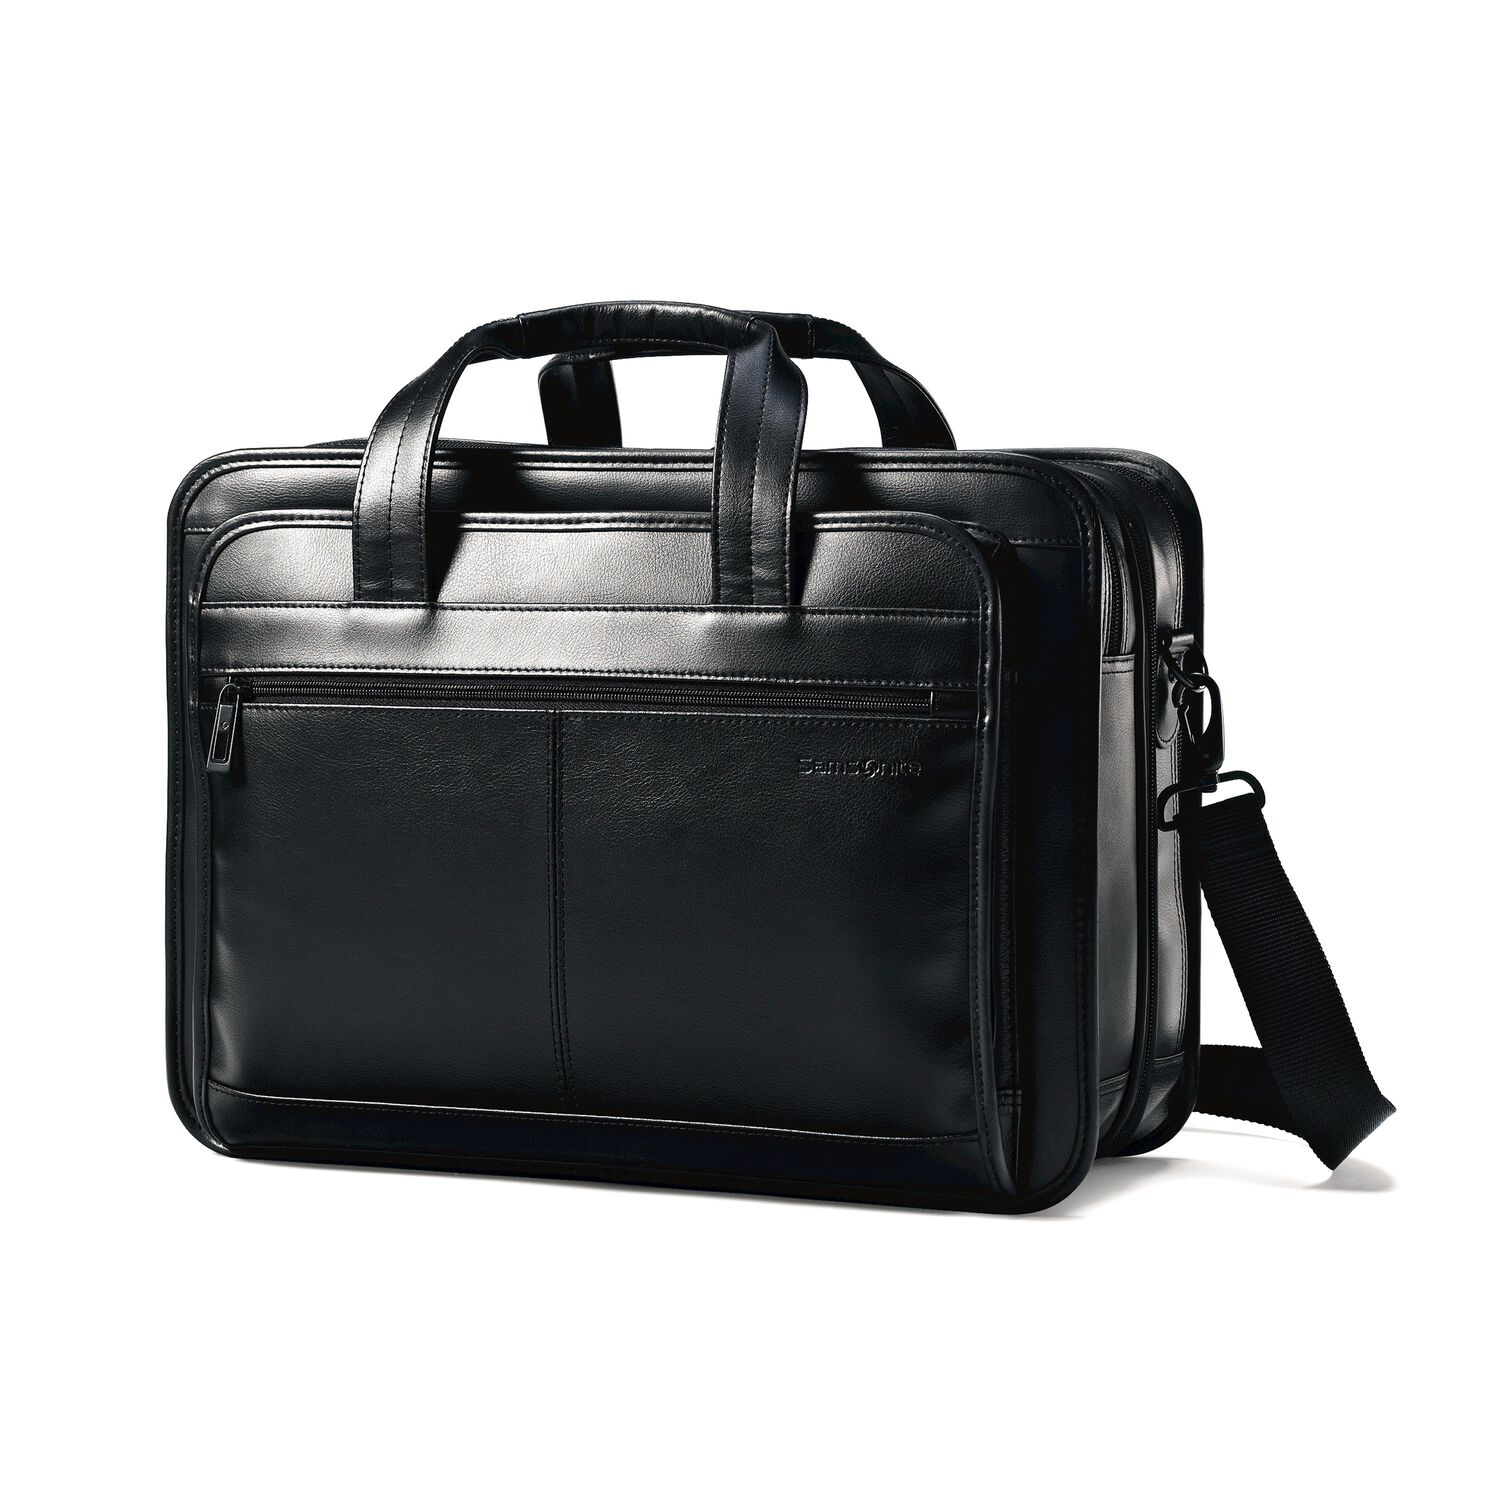 0f18f21f63 Samsonite Leather Expandable Business Case in the color Black.